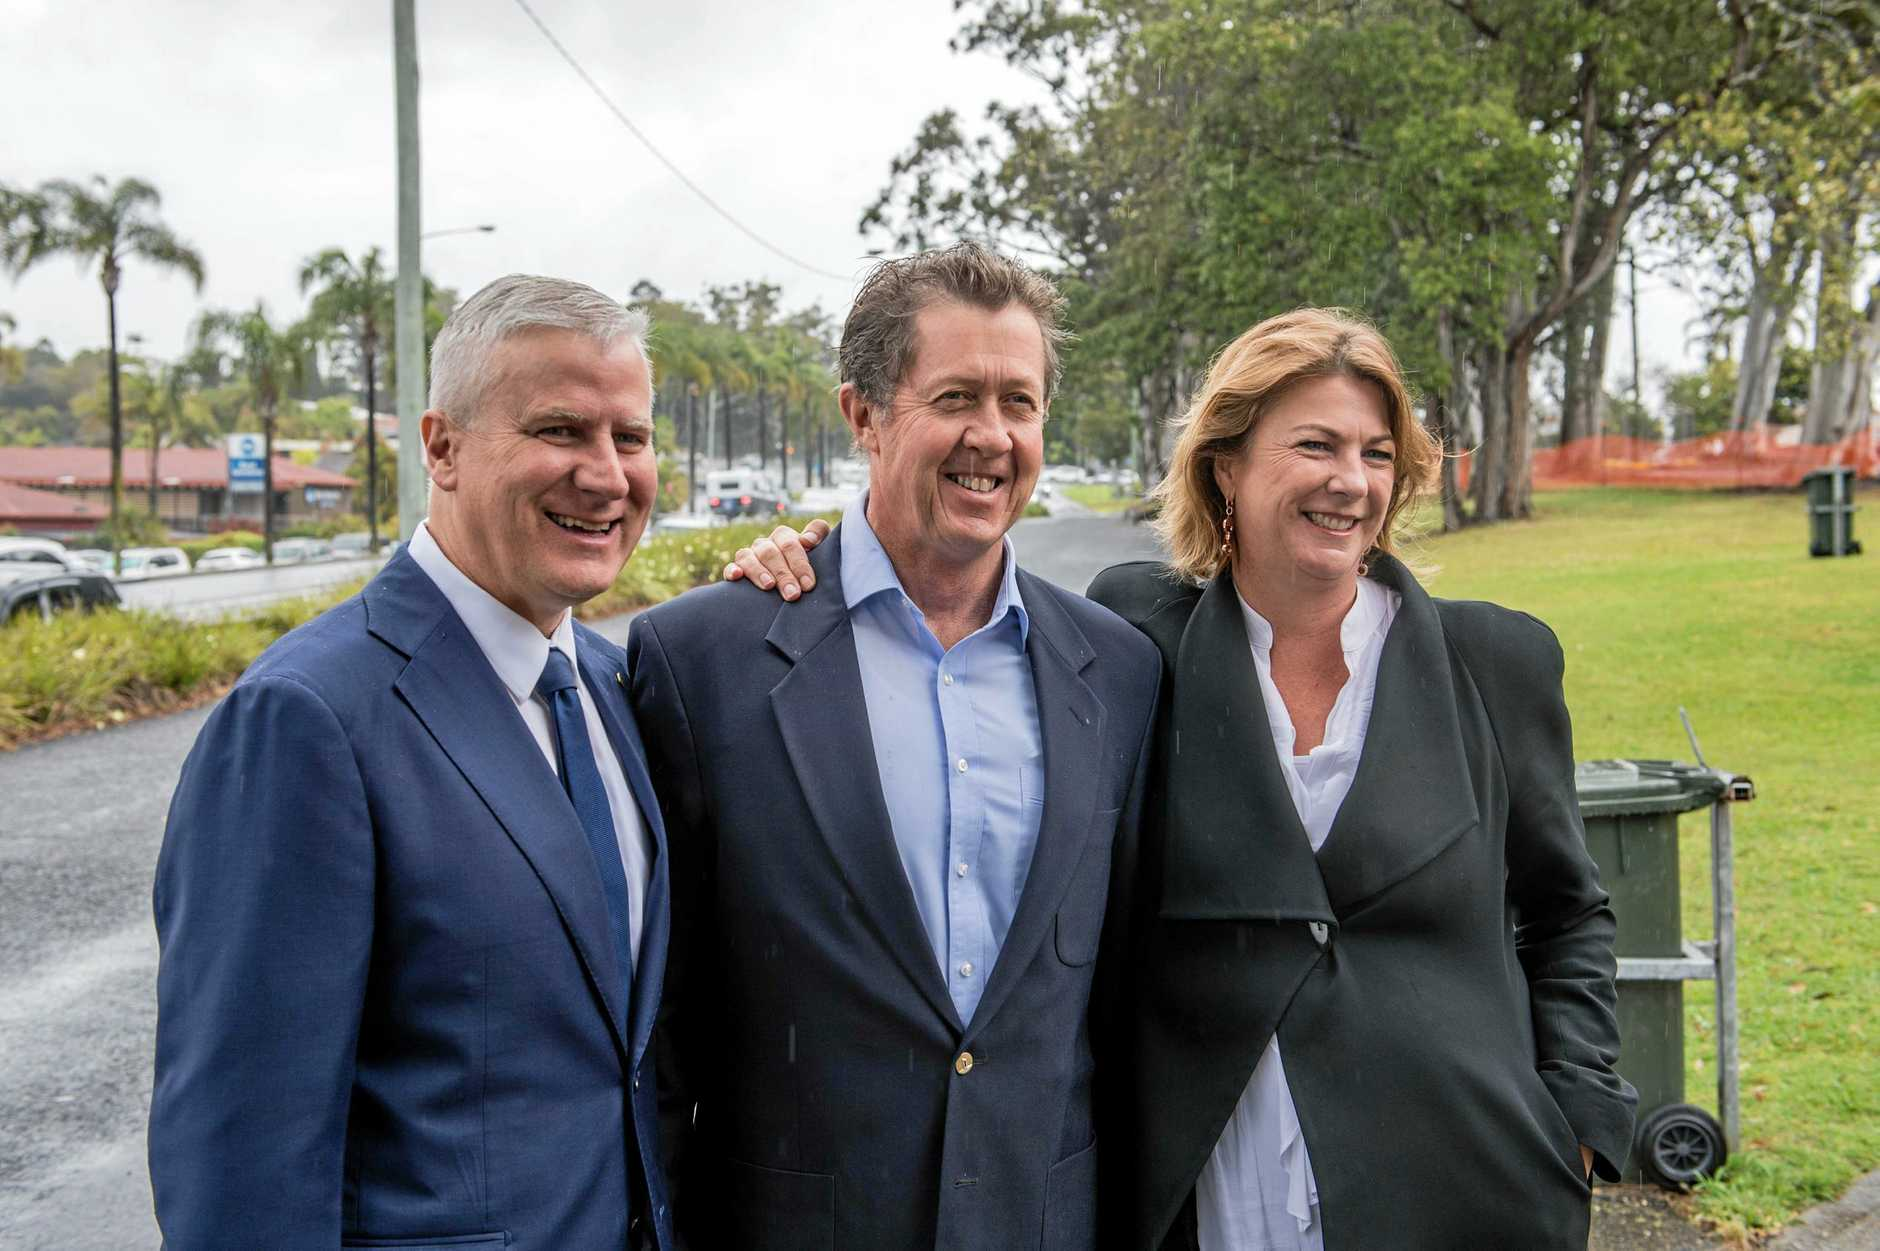 The concept design for the bypass has been released. Deputy Prime Minister and Minister for Infrastructure, Transport and Regional Development Michael McCormack, Federal Member for Cowper Luke Hartsuyker and NSW Minister for Roads, Maritime and Freight and Member for Oxley Melinda Pavey.